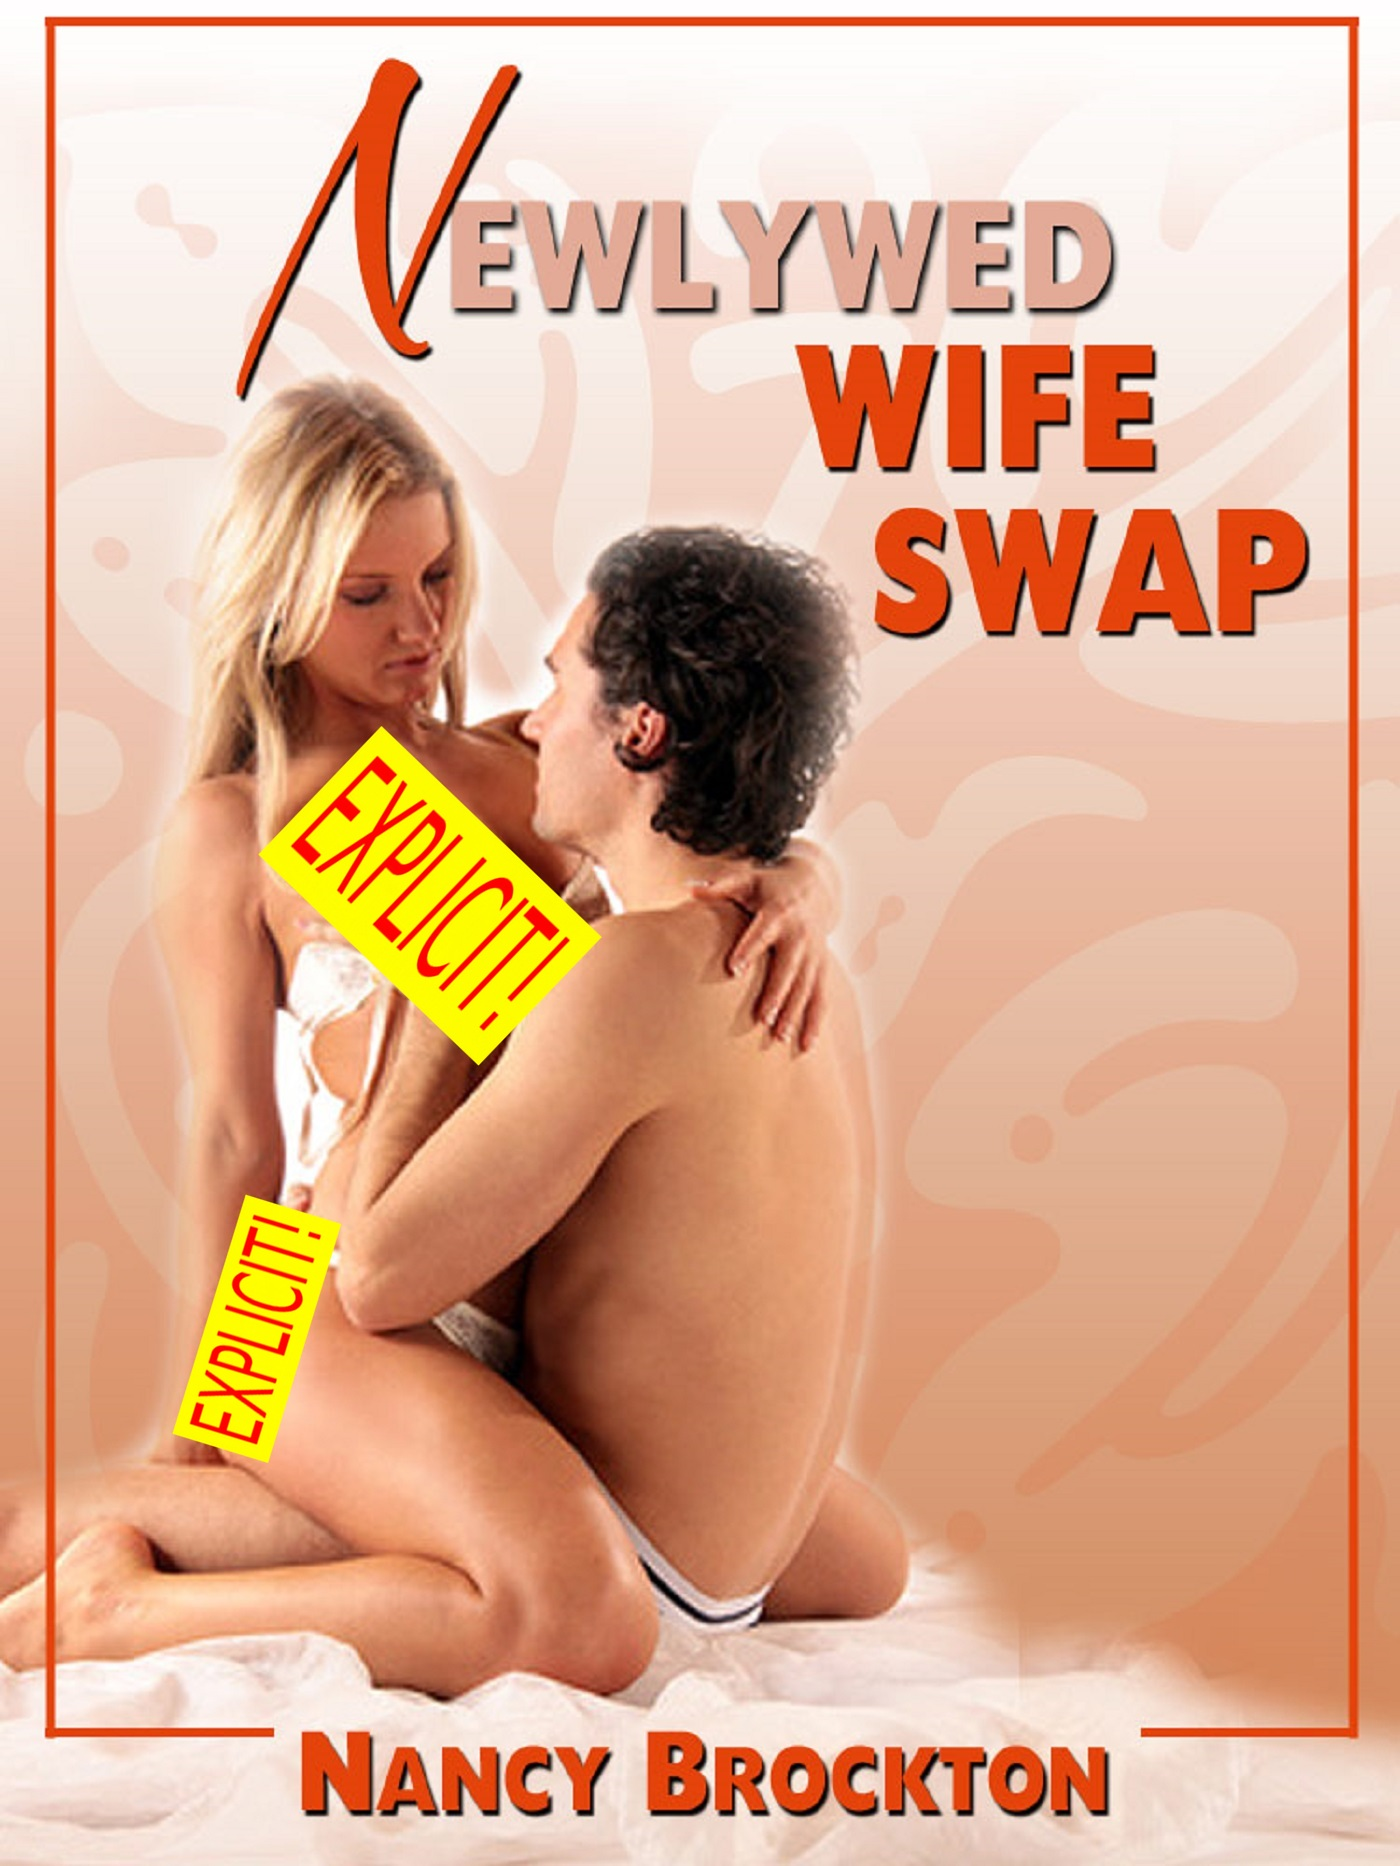 erotic-stories-of-wife-swapping-naked-sexy-slutty-woman